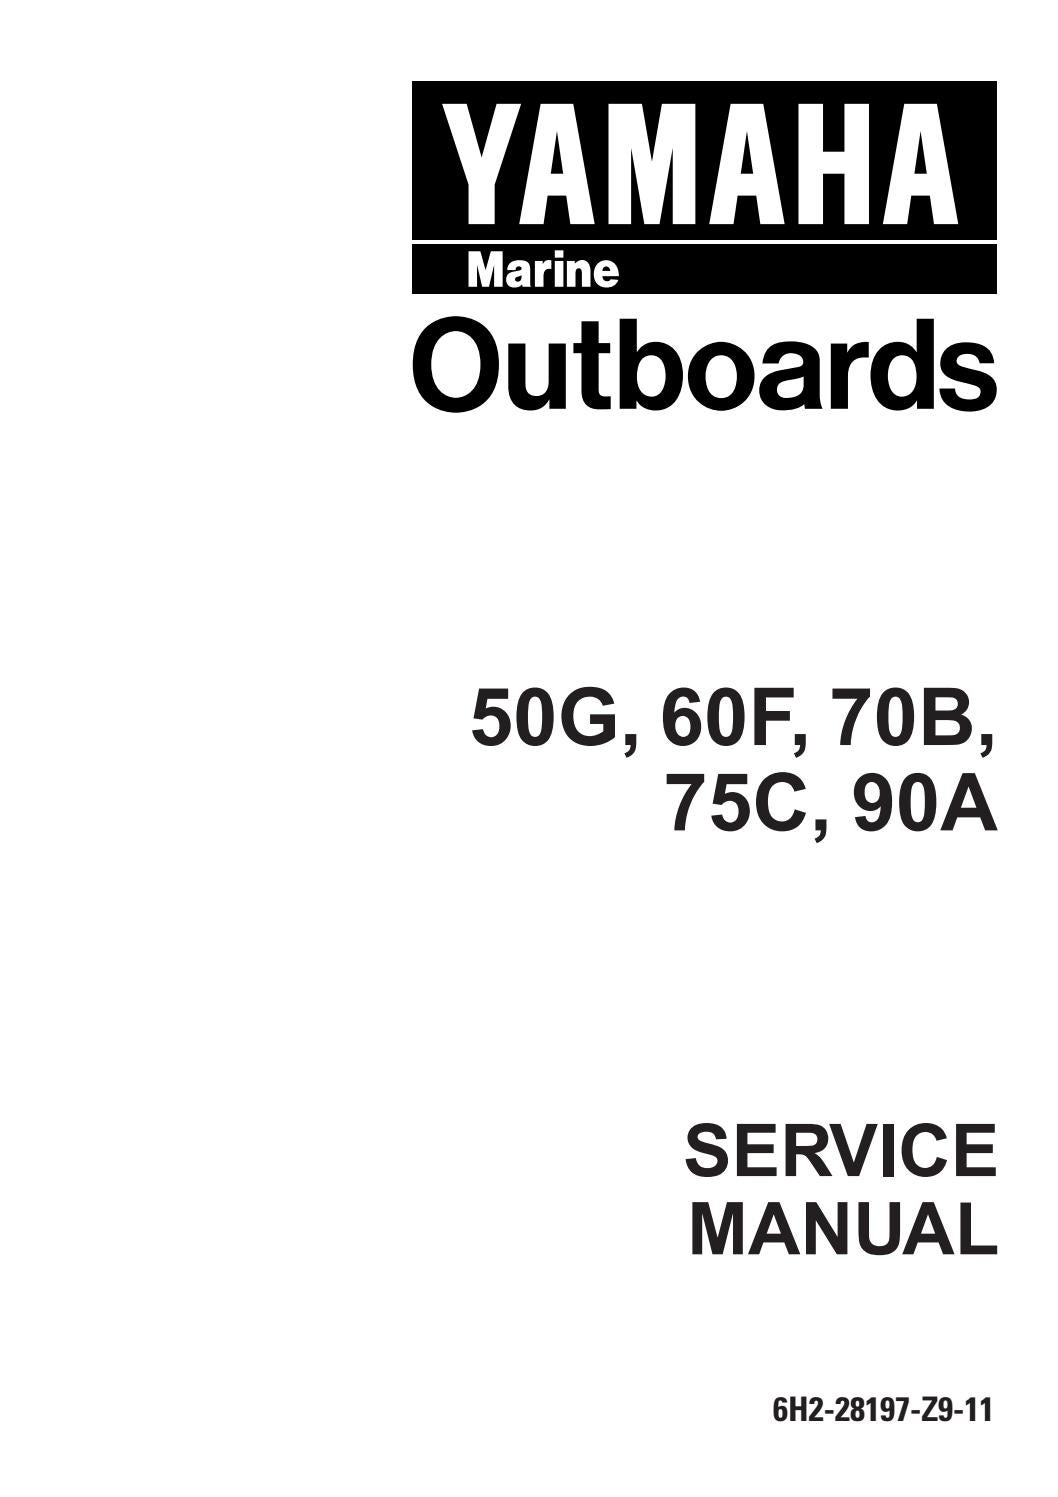 Yamaha 60fedo outboard service repair manual l 407212 by